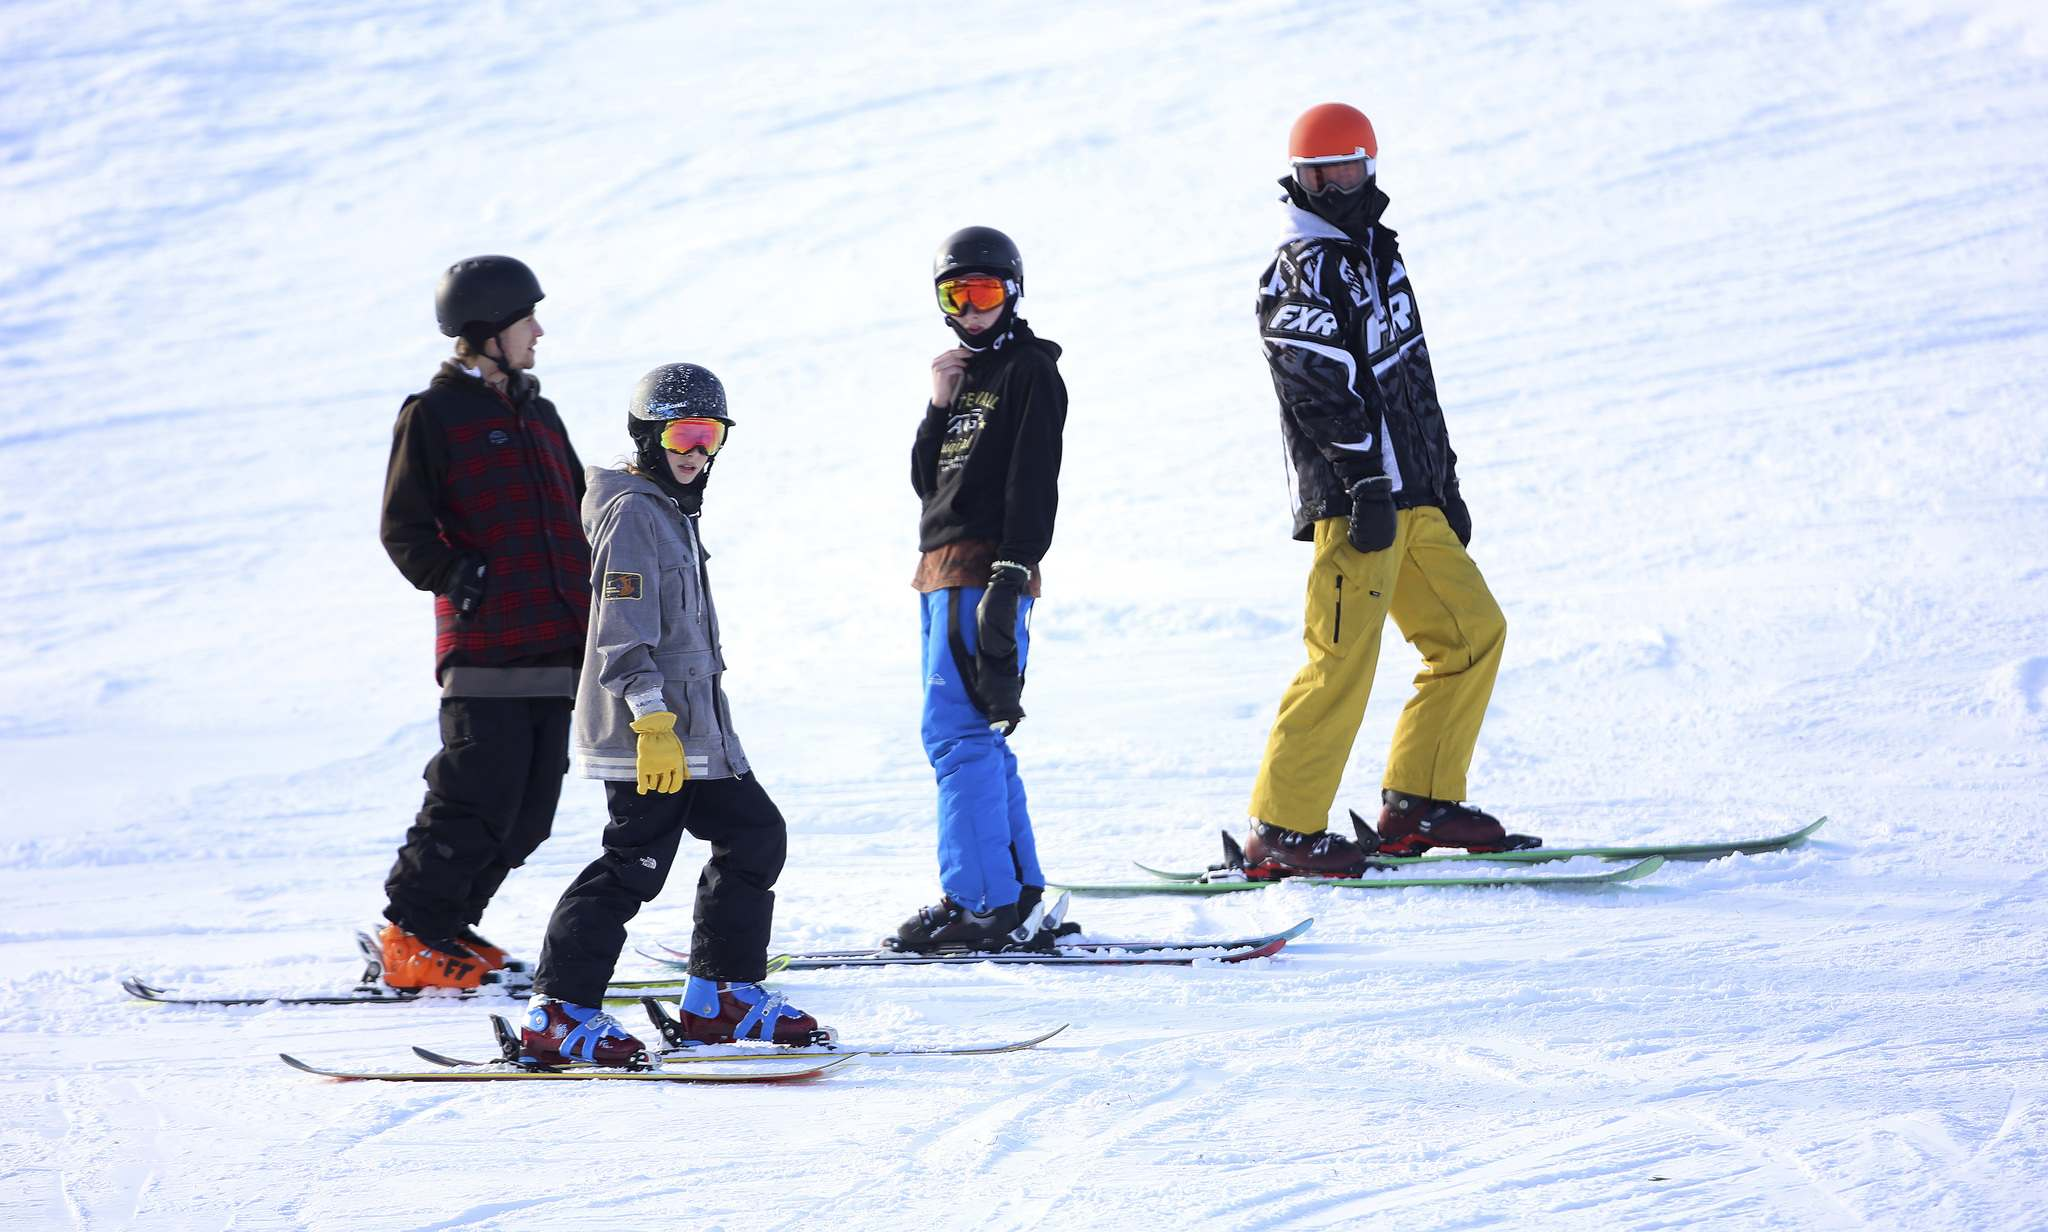 TREVOR HAGAN / WINNIPEG FREE PRESS</p><p>The early season opener allows skiers to get a jump on honing their skills.</p>